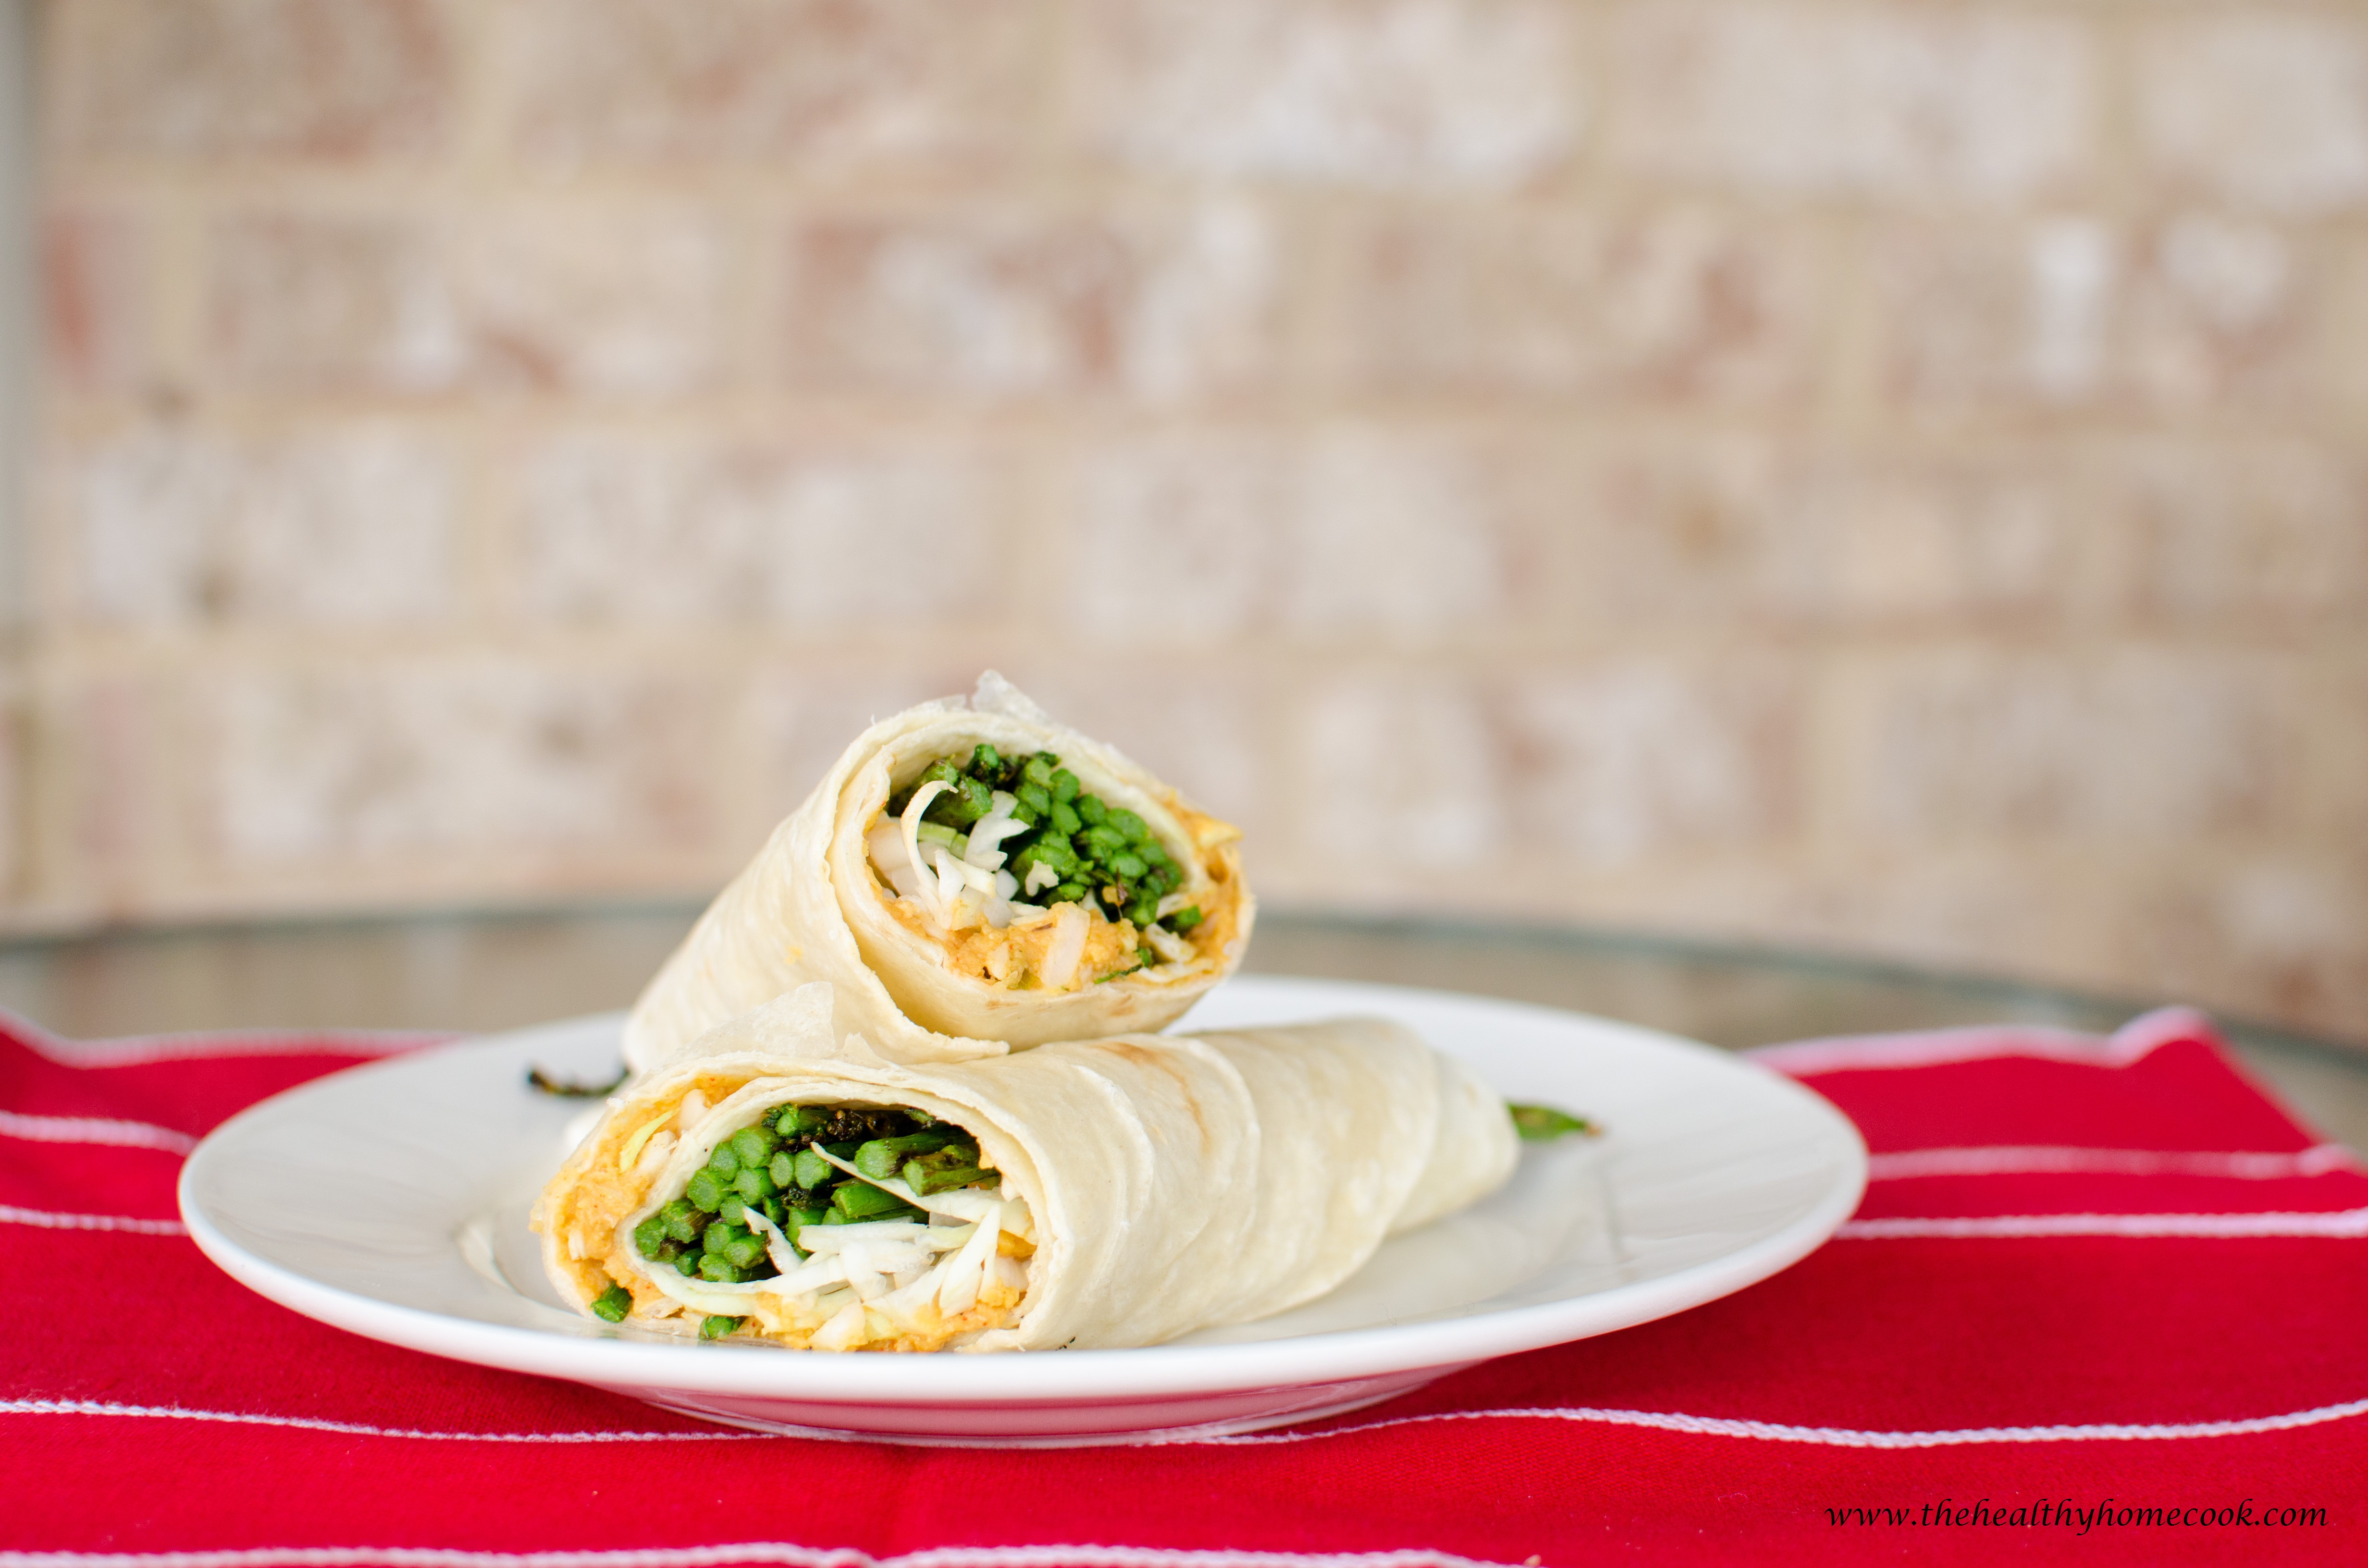 This Grilled Asparagus Wrap Filled With Jalapeno Hummus, Grilled Asparagus,  And Crunchy Cabbage Is